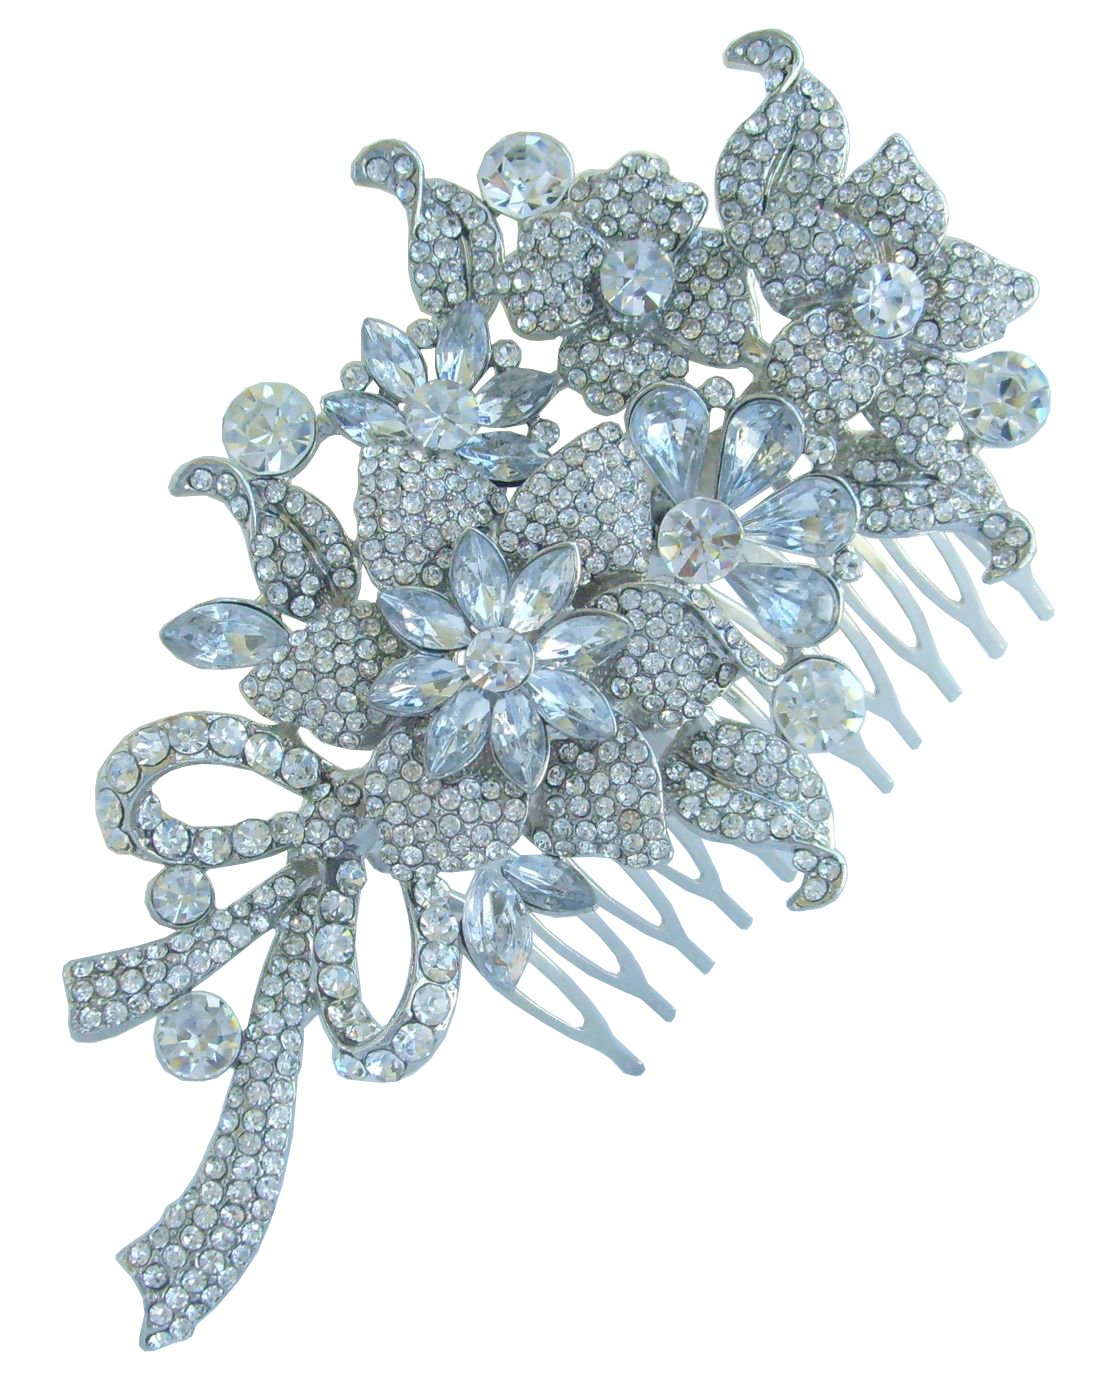 Sindary Silver Tone 4.53'' Flower Wedding Hair Comb Clear Rhinestone Crystal Bridesmaid Jewelry HZ4716